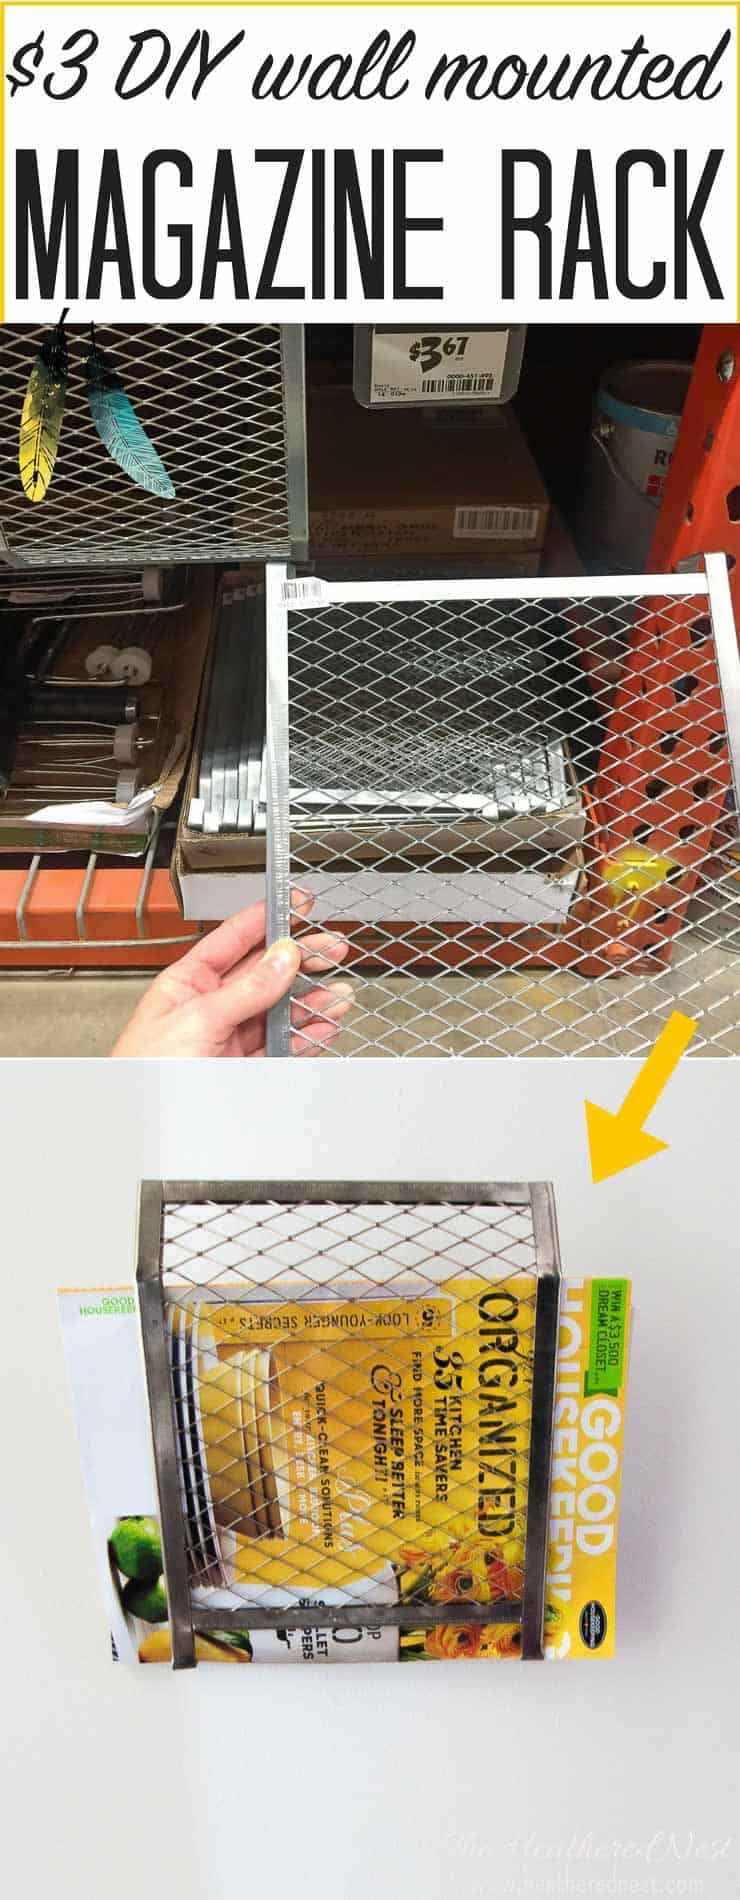 BRILLIANT! Doing this over the weekend! A DIY wall mounted magazine rack made from a $3 paint grid! Very industrial chic, popular home hack. Love this!!!